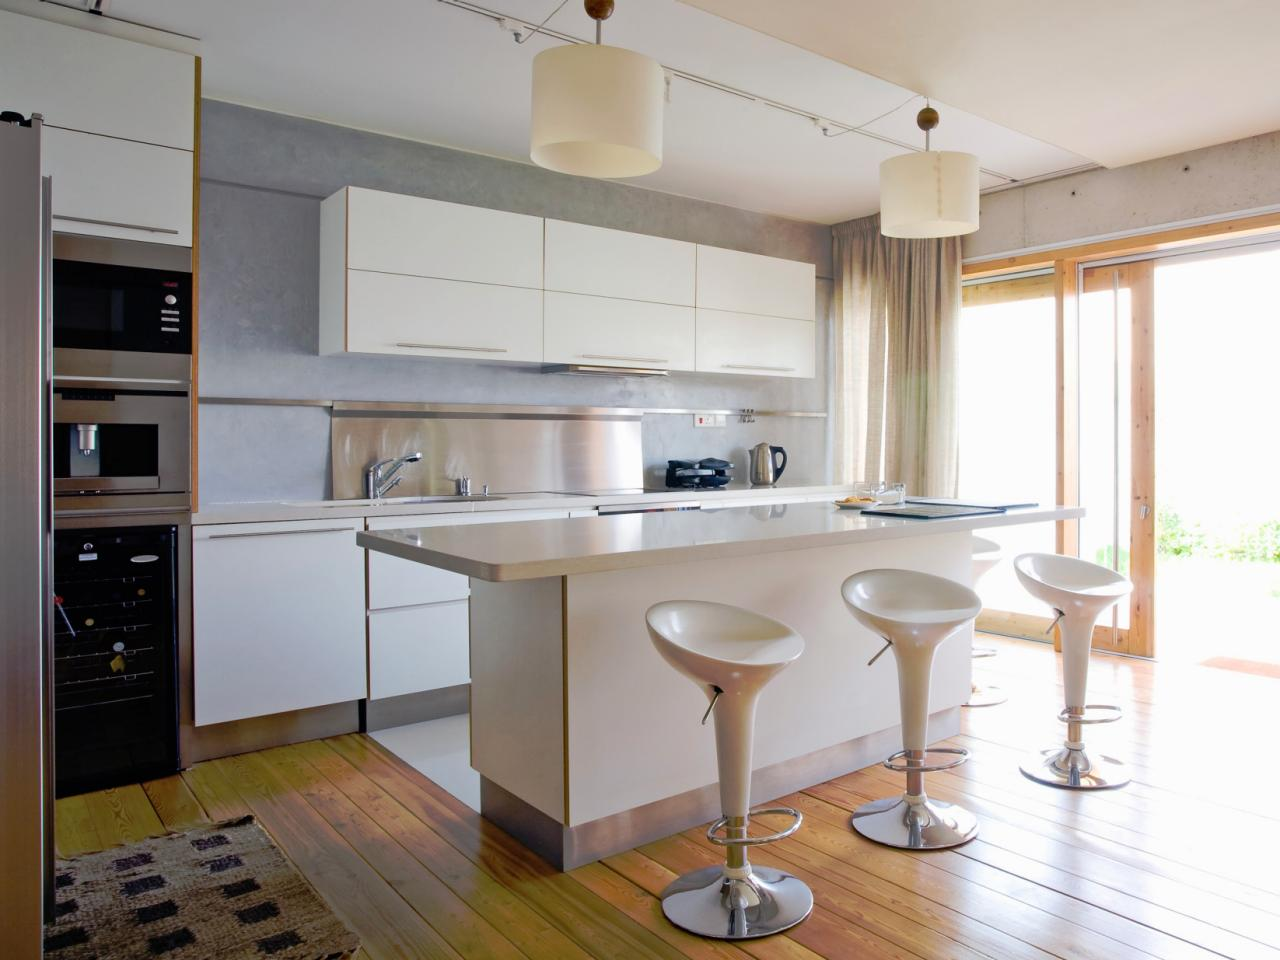 Fullsize Of Kitchen Island Design With Seating